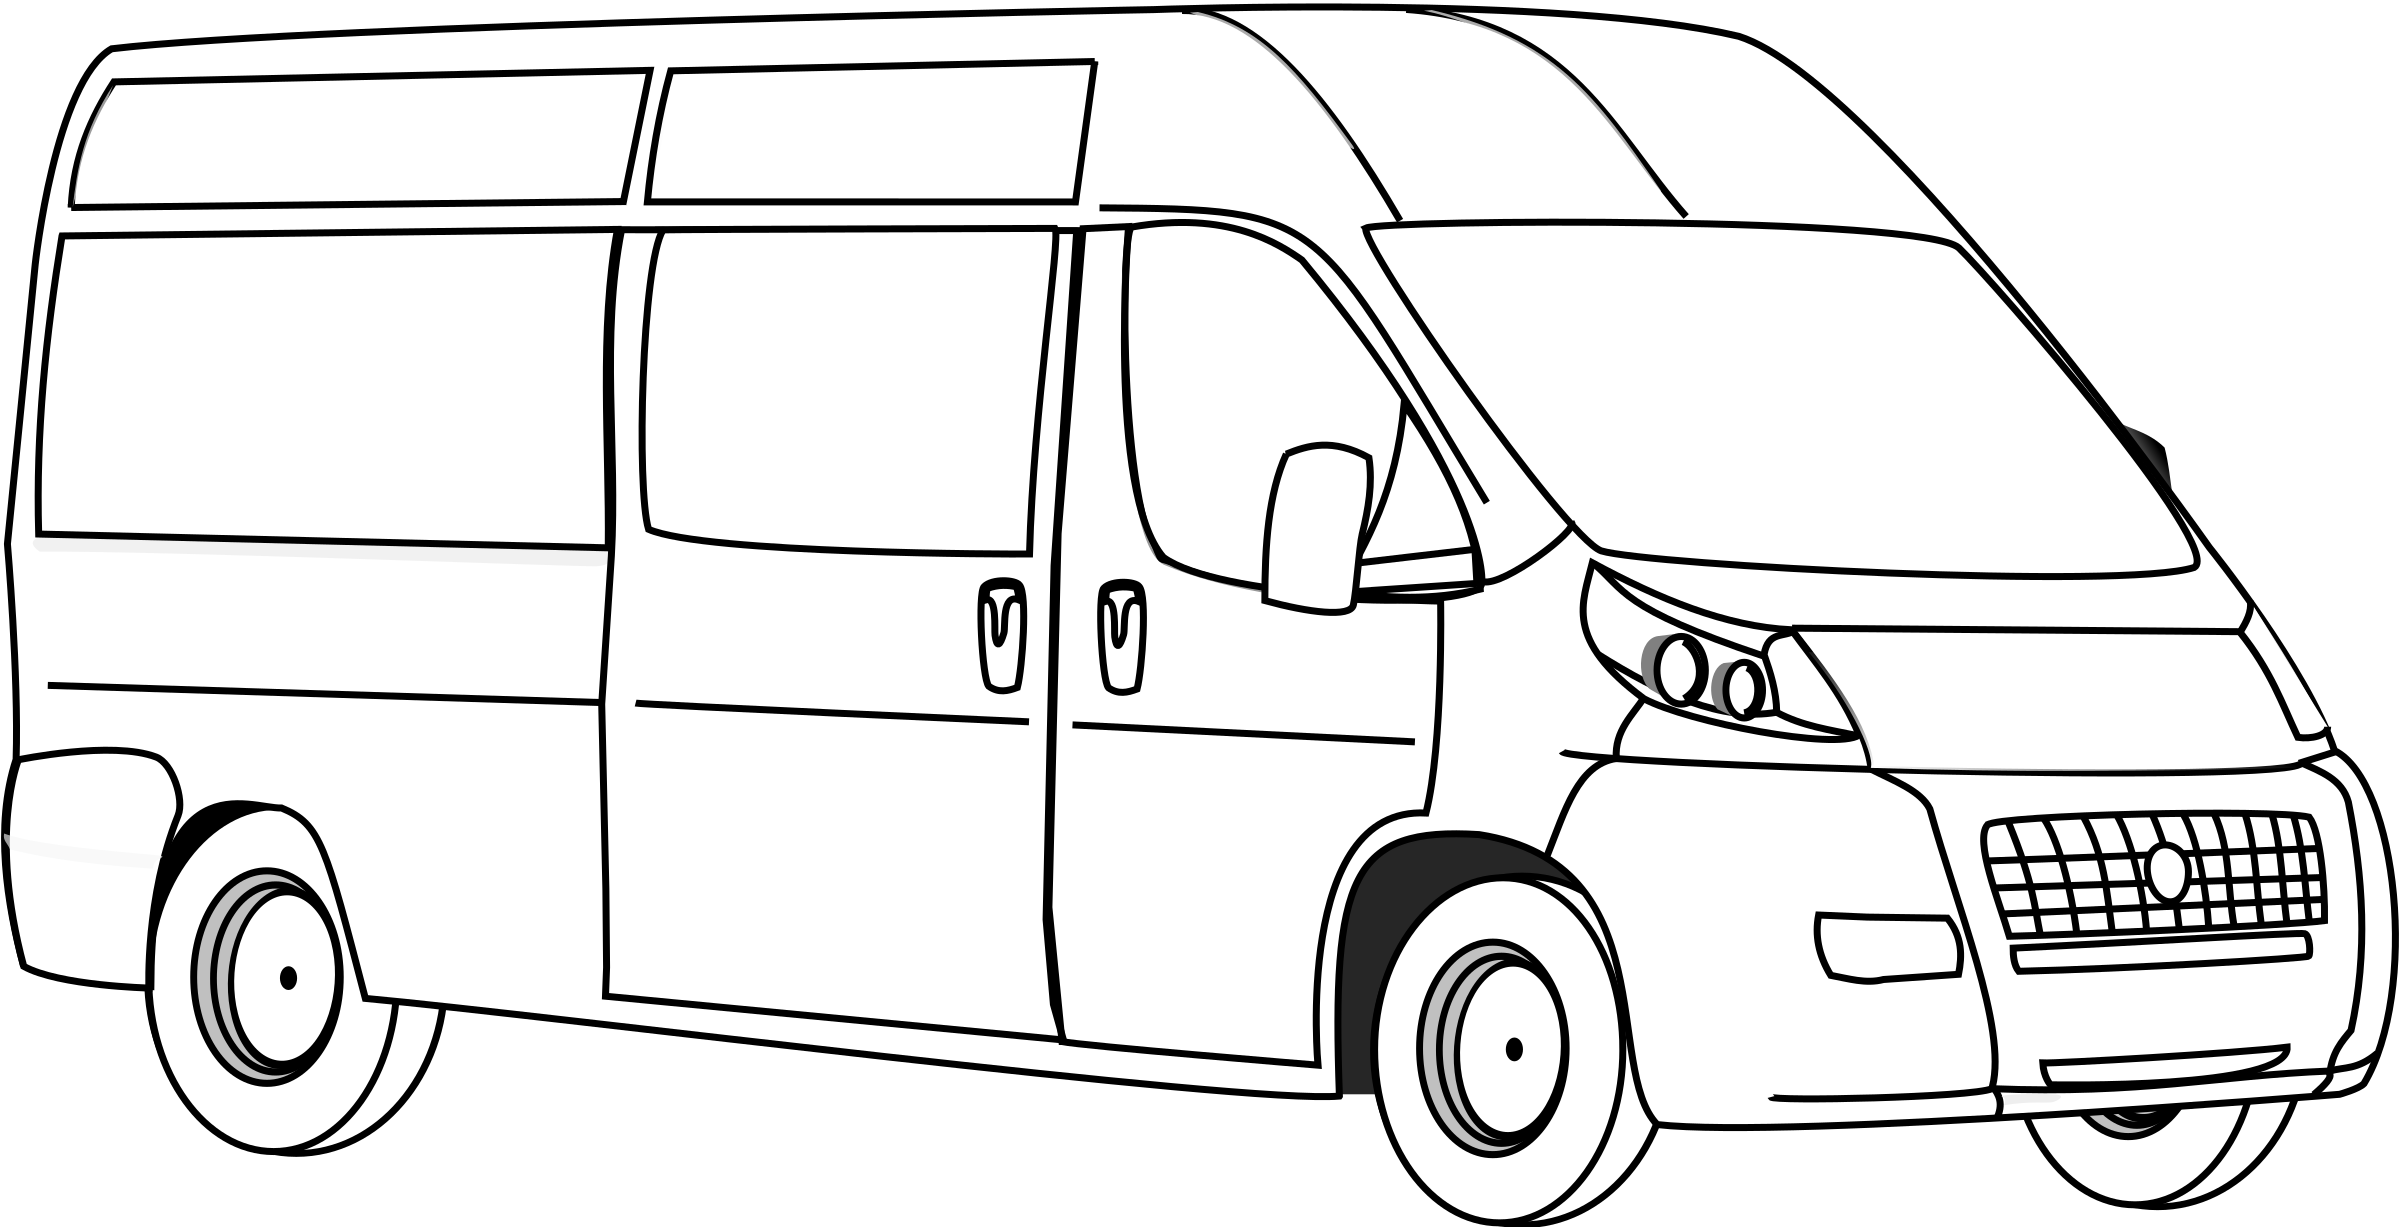 Minivan clipart mail van.  collection of big